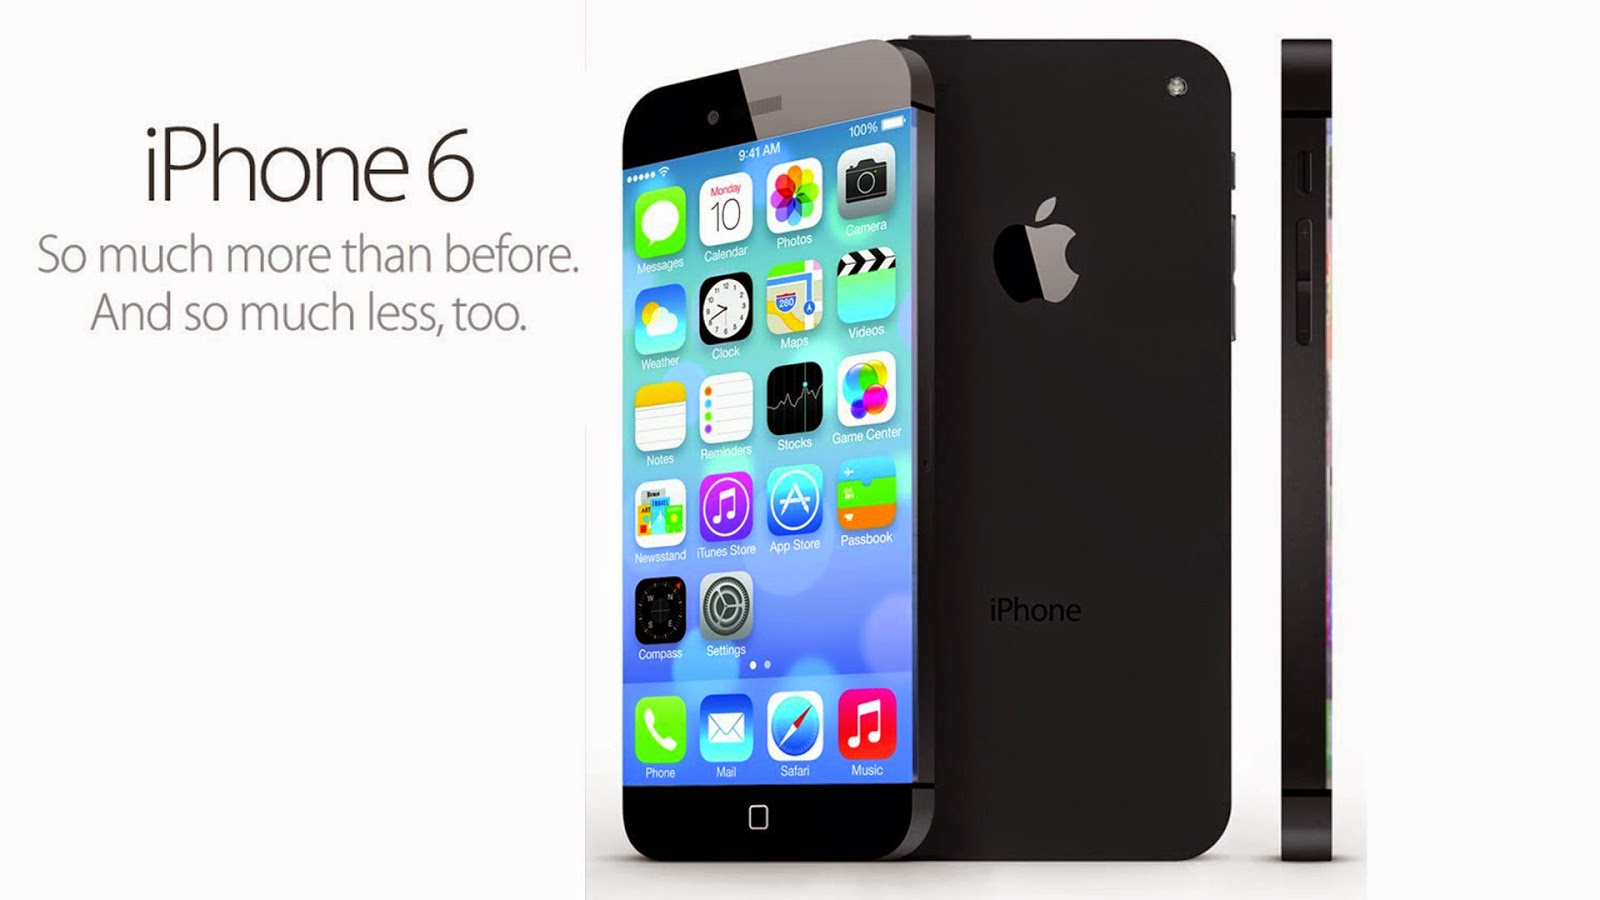 iphone 6 full price iphone iphone 6 plus price in usa 14975